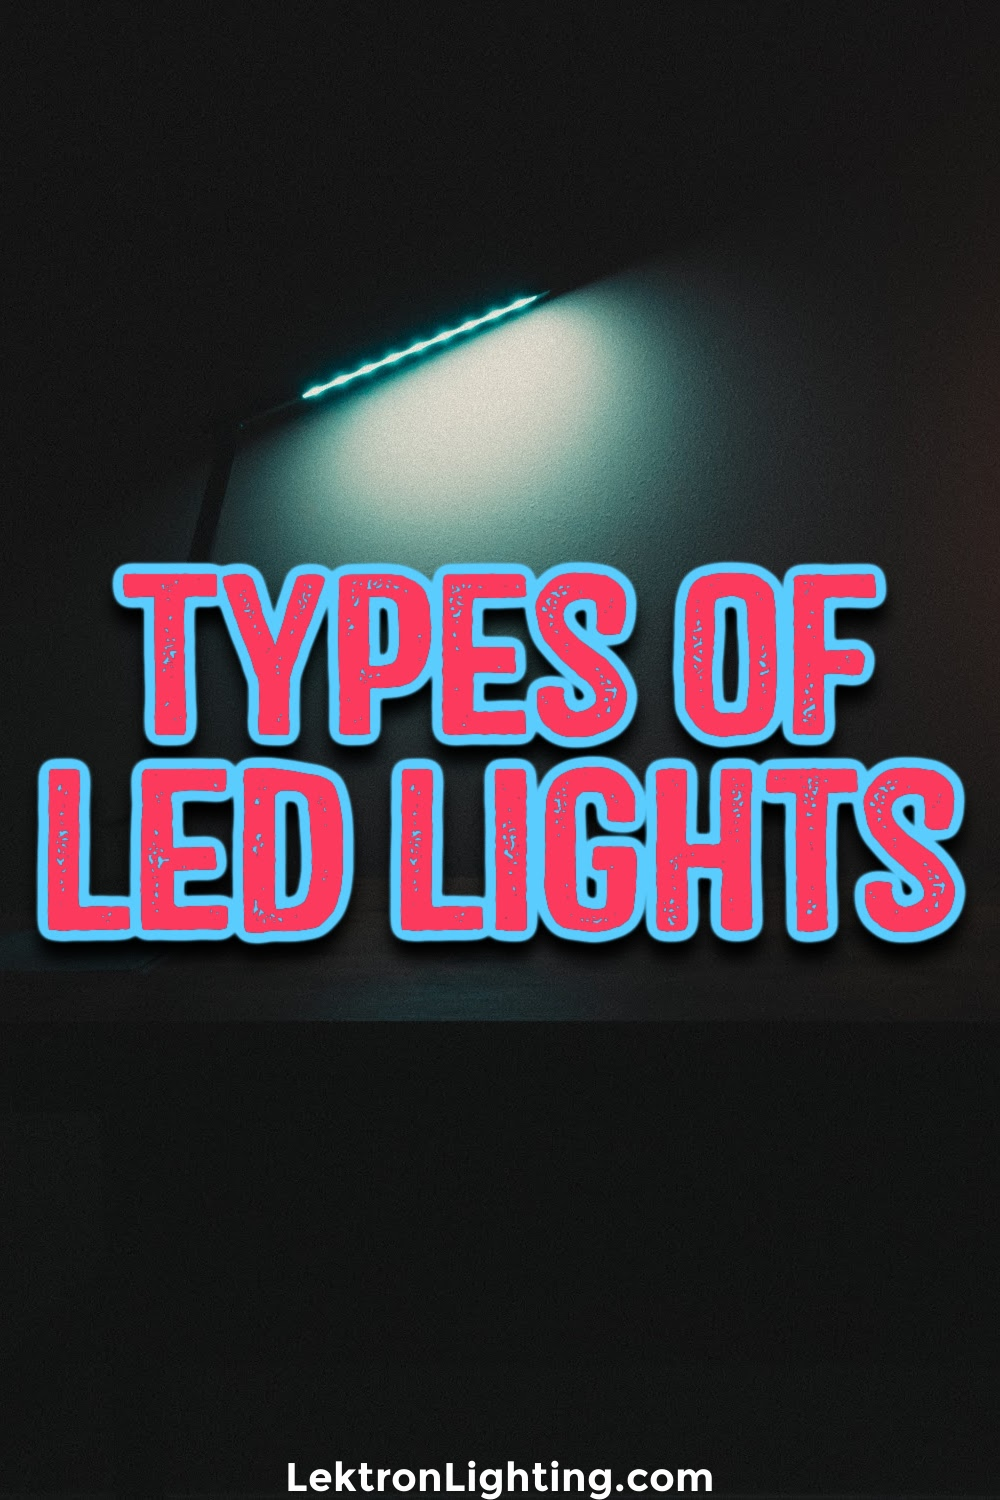 The different types of LED lights can help you understand how to get the most from your fixtures while also saving the most.